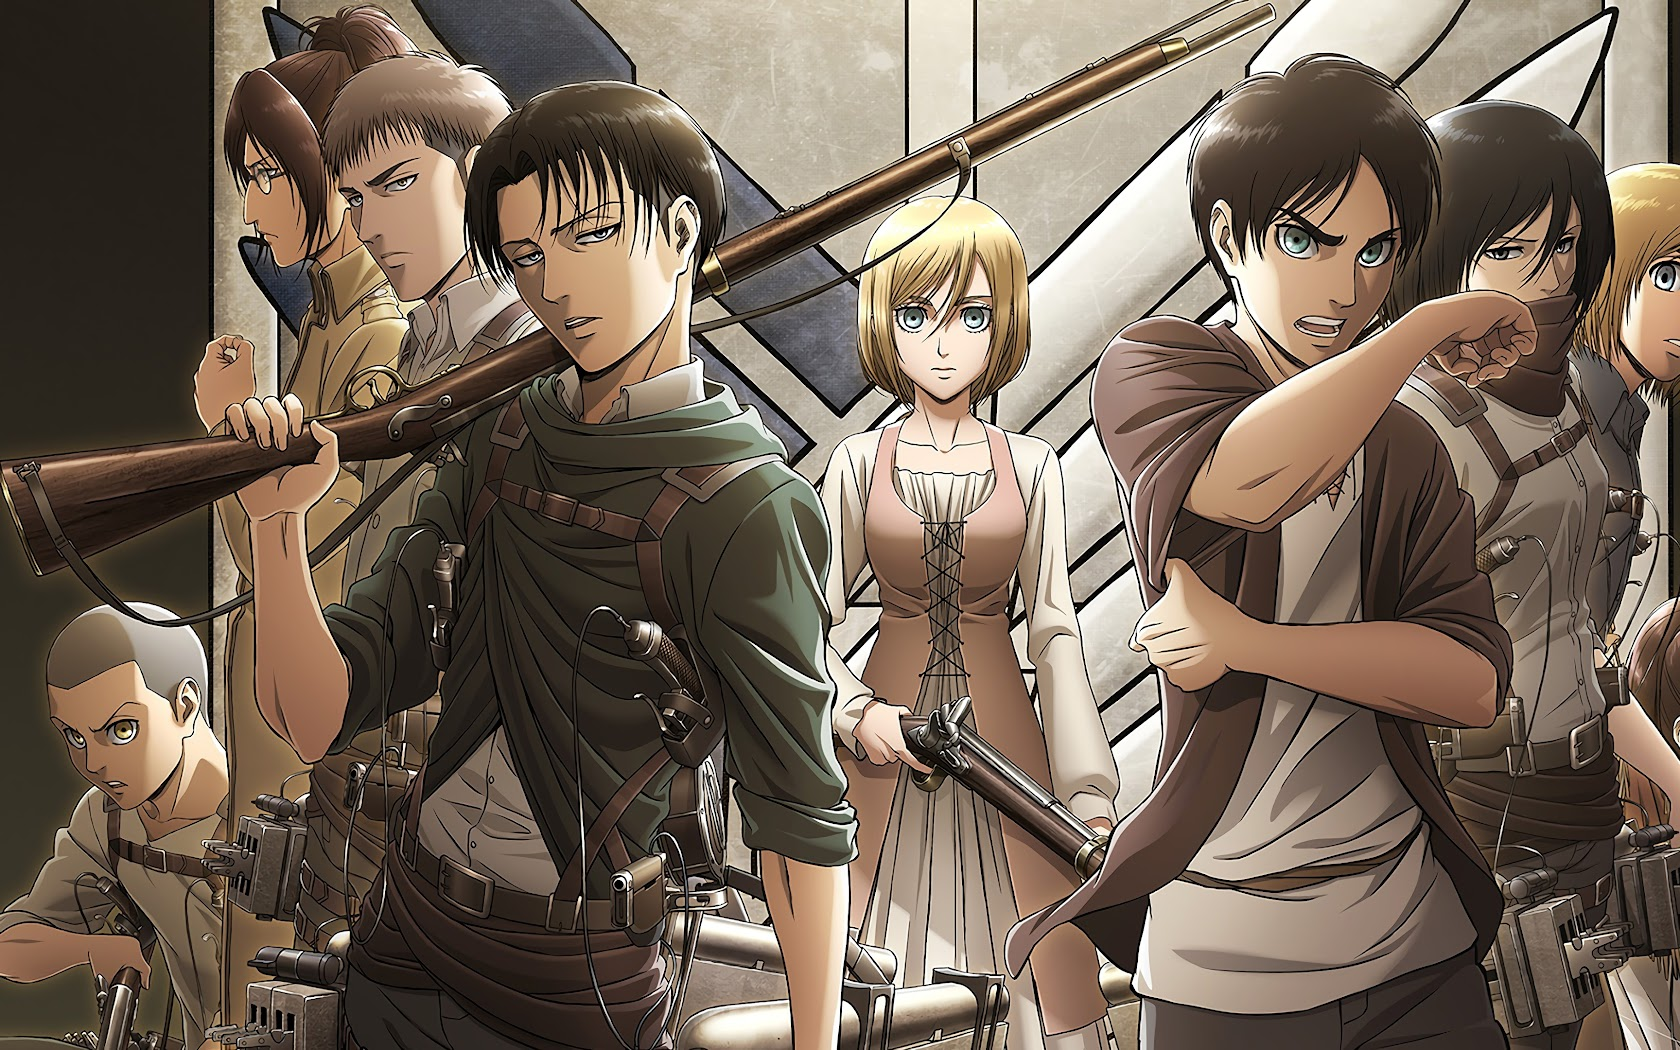 Advertisement platforms categories 0.1042015 user rating6 1/2 zip into the world of the popular ani. Levi, Eren, Krista, Attack on Titan, Characters, 4K, #143 ...